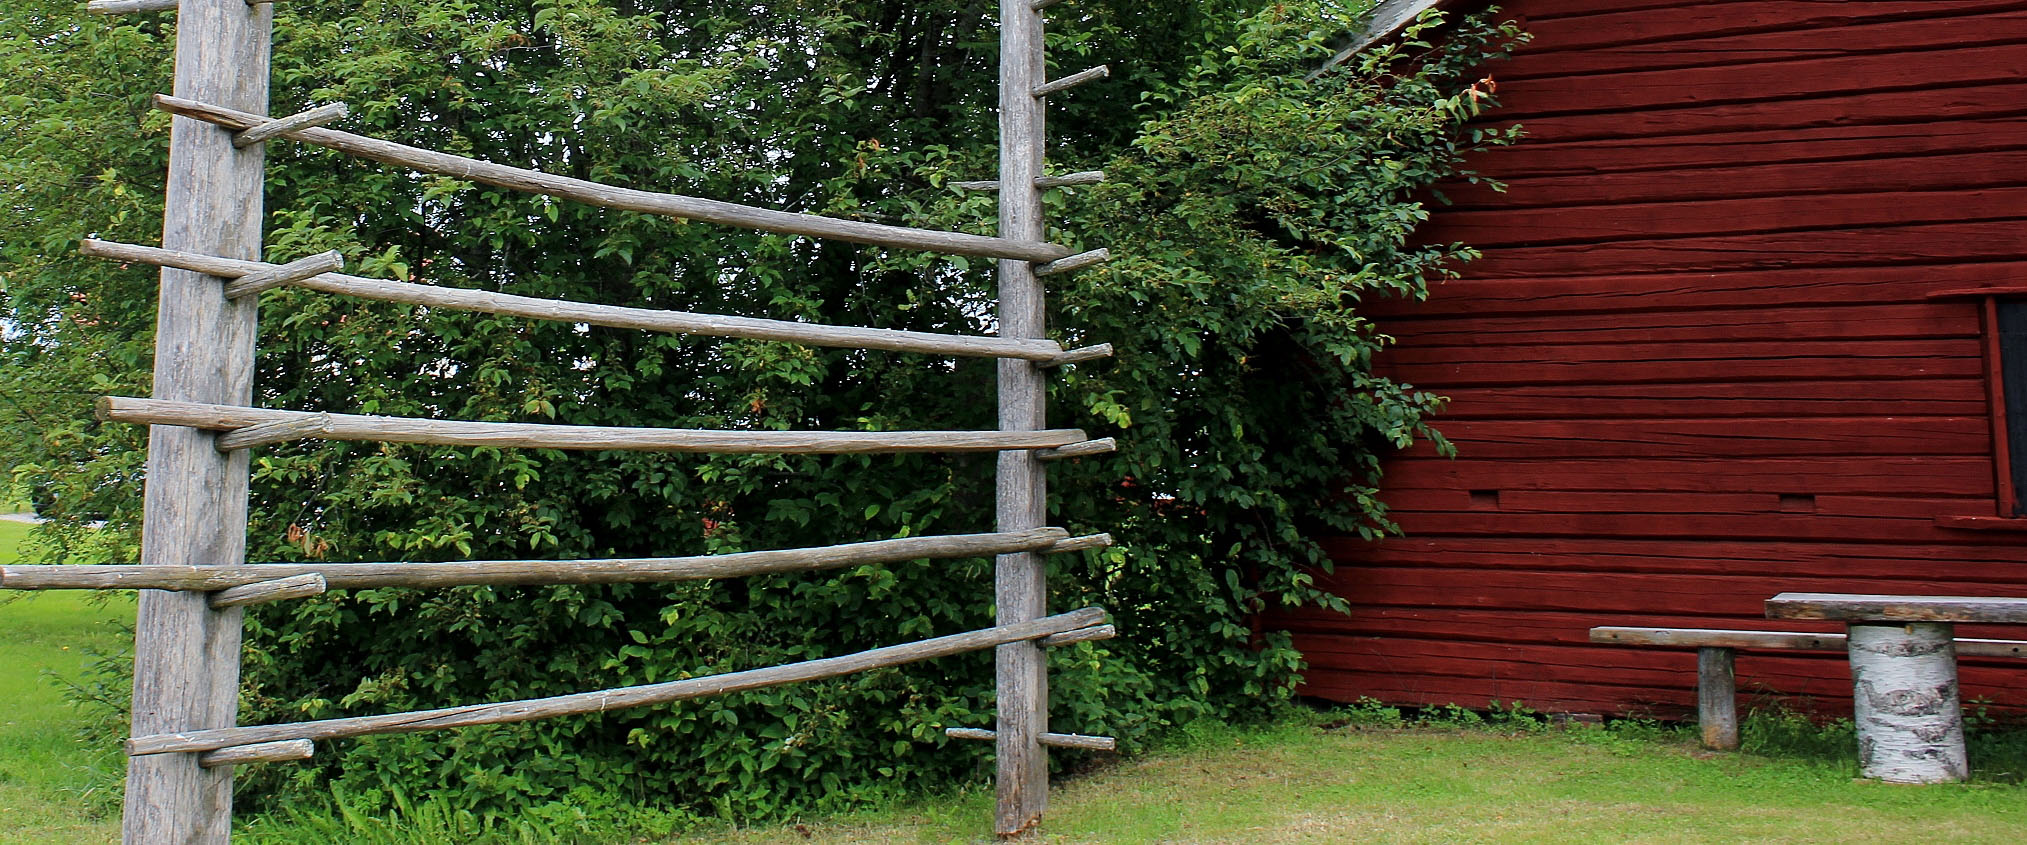 Hay drying rack by Legdgården.